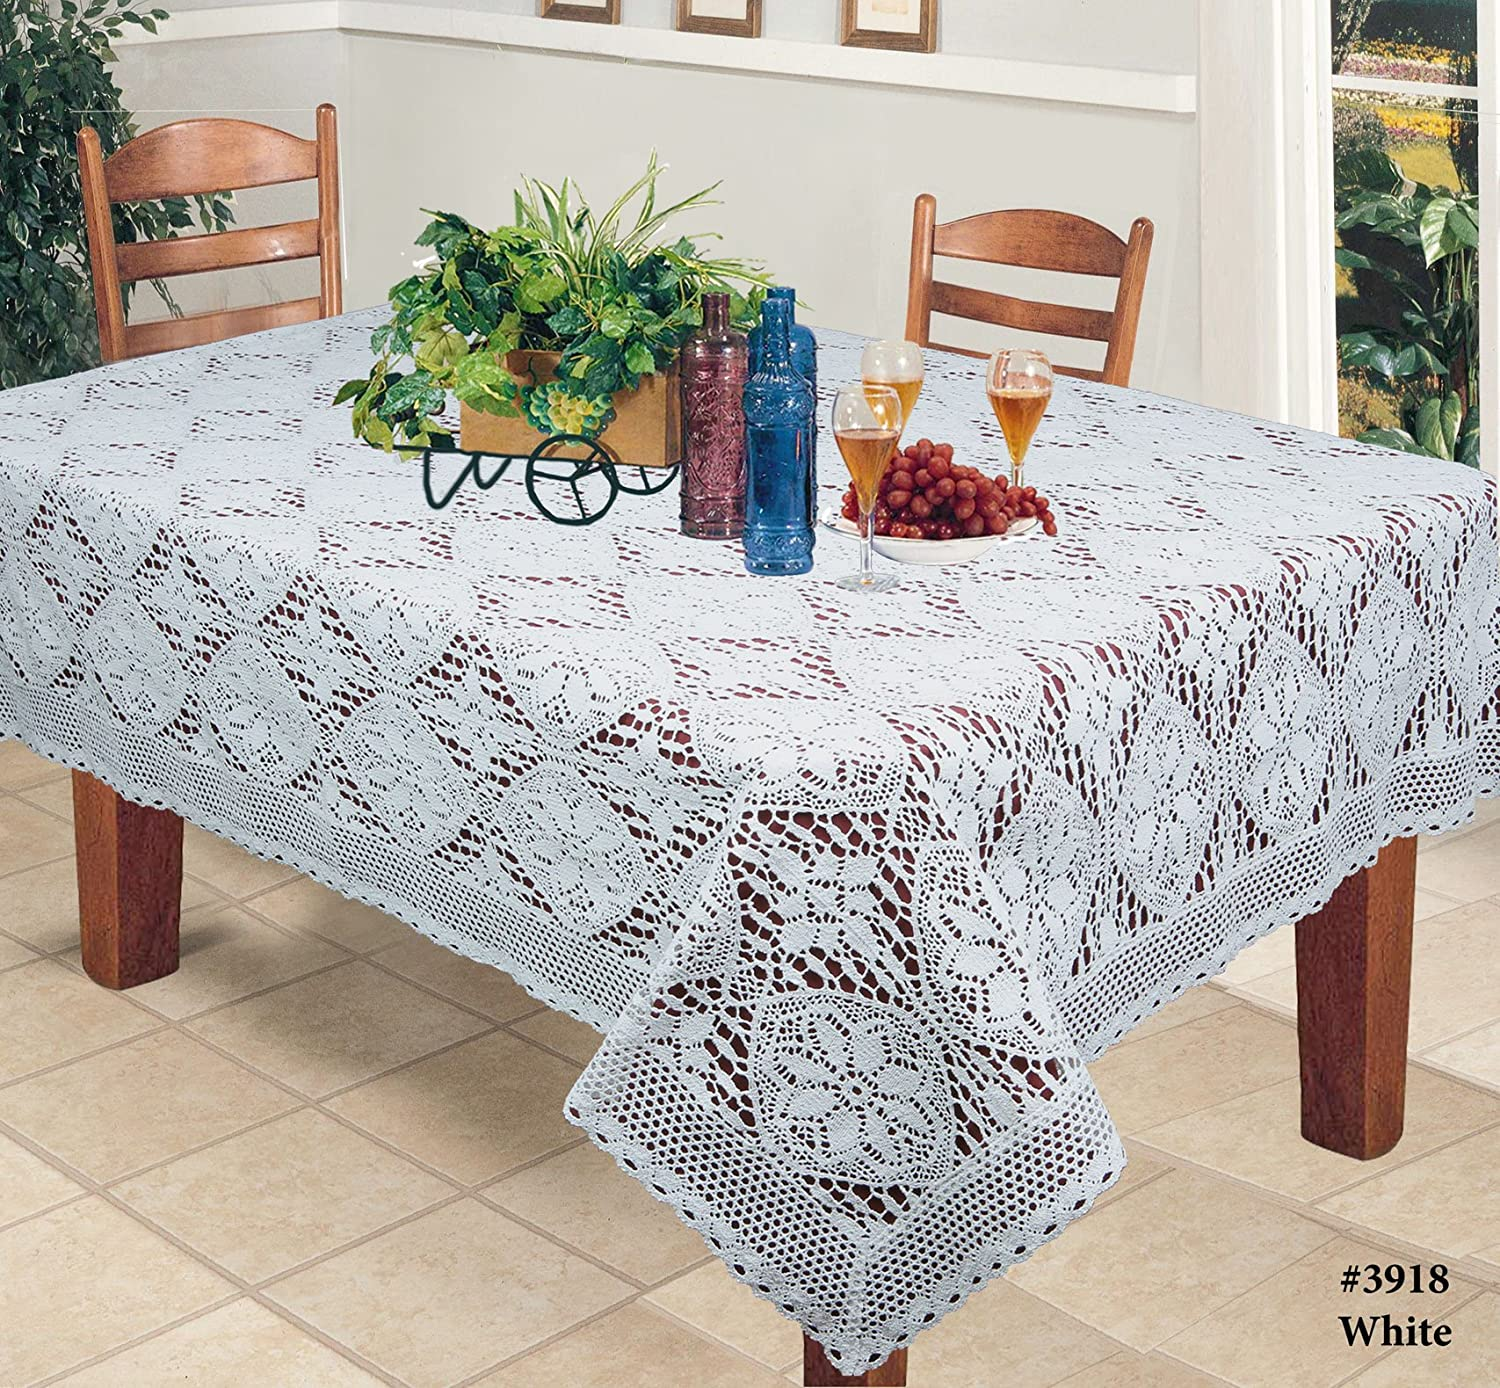 "Amazon Crochet Lace Tablecloth 60x120"" Rectangular Knitted"